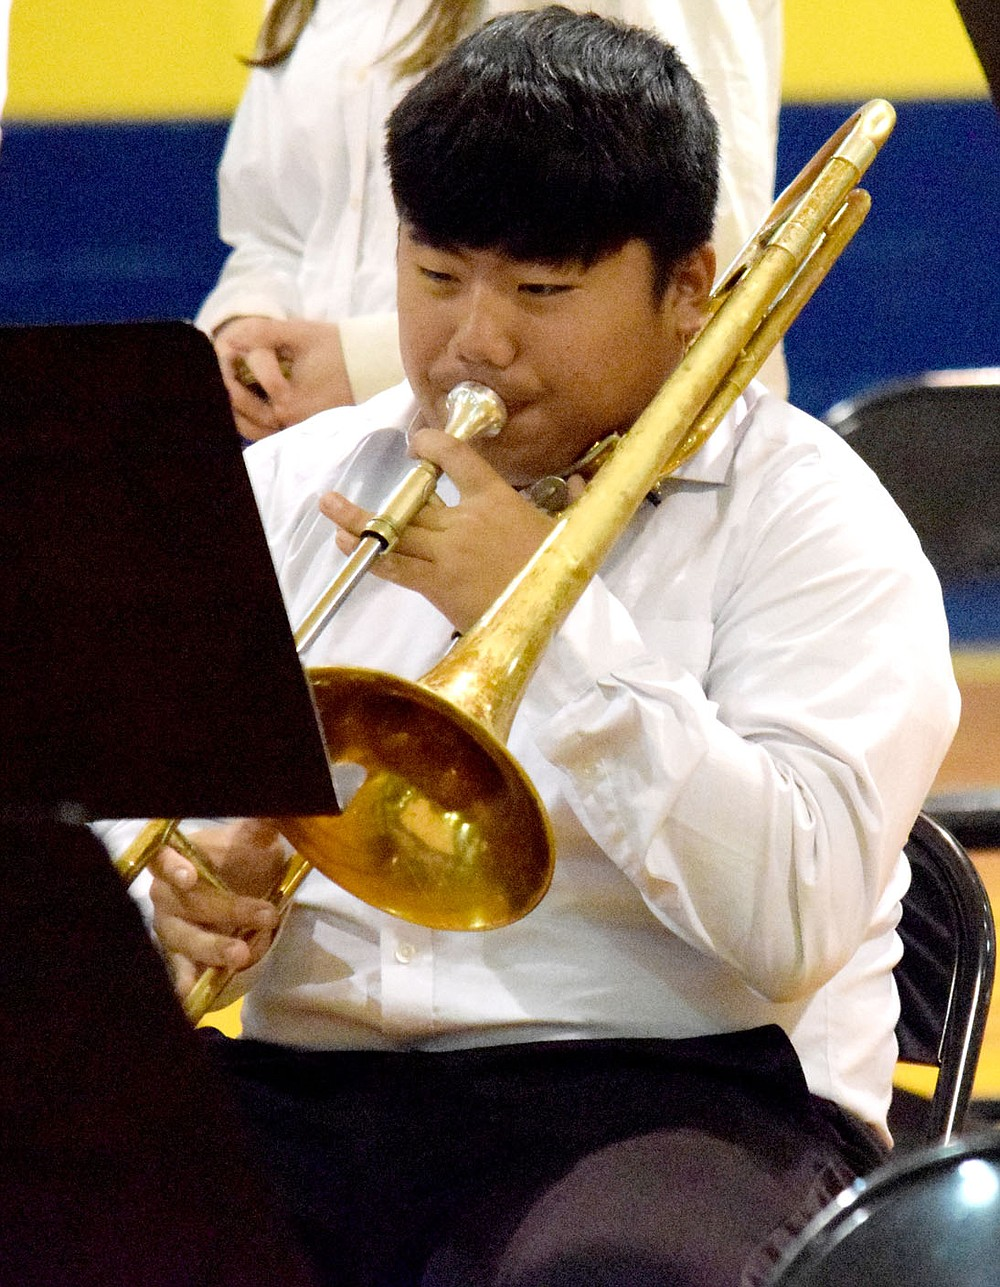 Westside Eagle Observer/MIKE ECKELS Cam'Ron Vang adds his rich trombone tones to one of the high school band pieces during the May 11 Bulldog Band Spring Concert at Peterson Gym in Decatur.